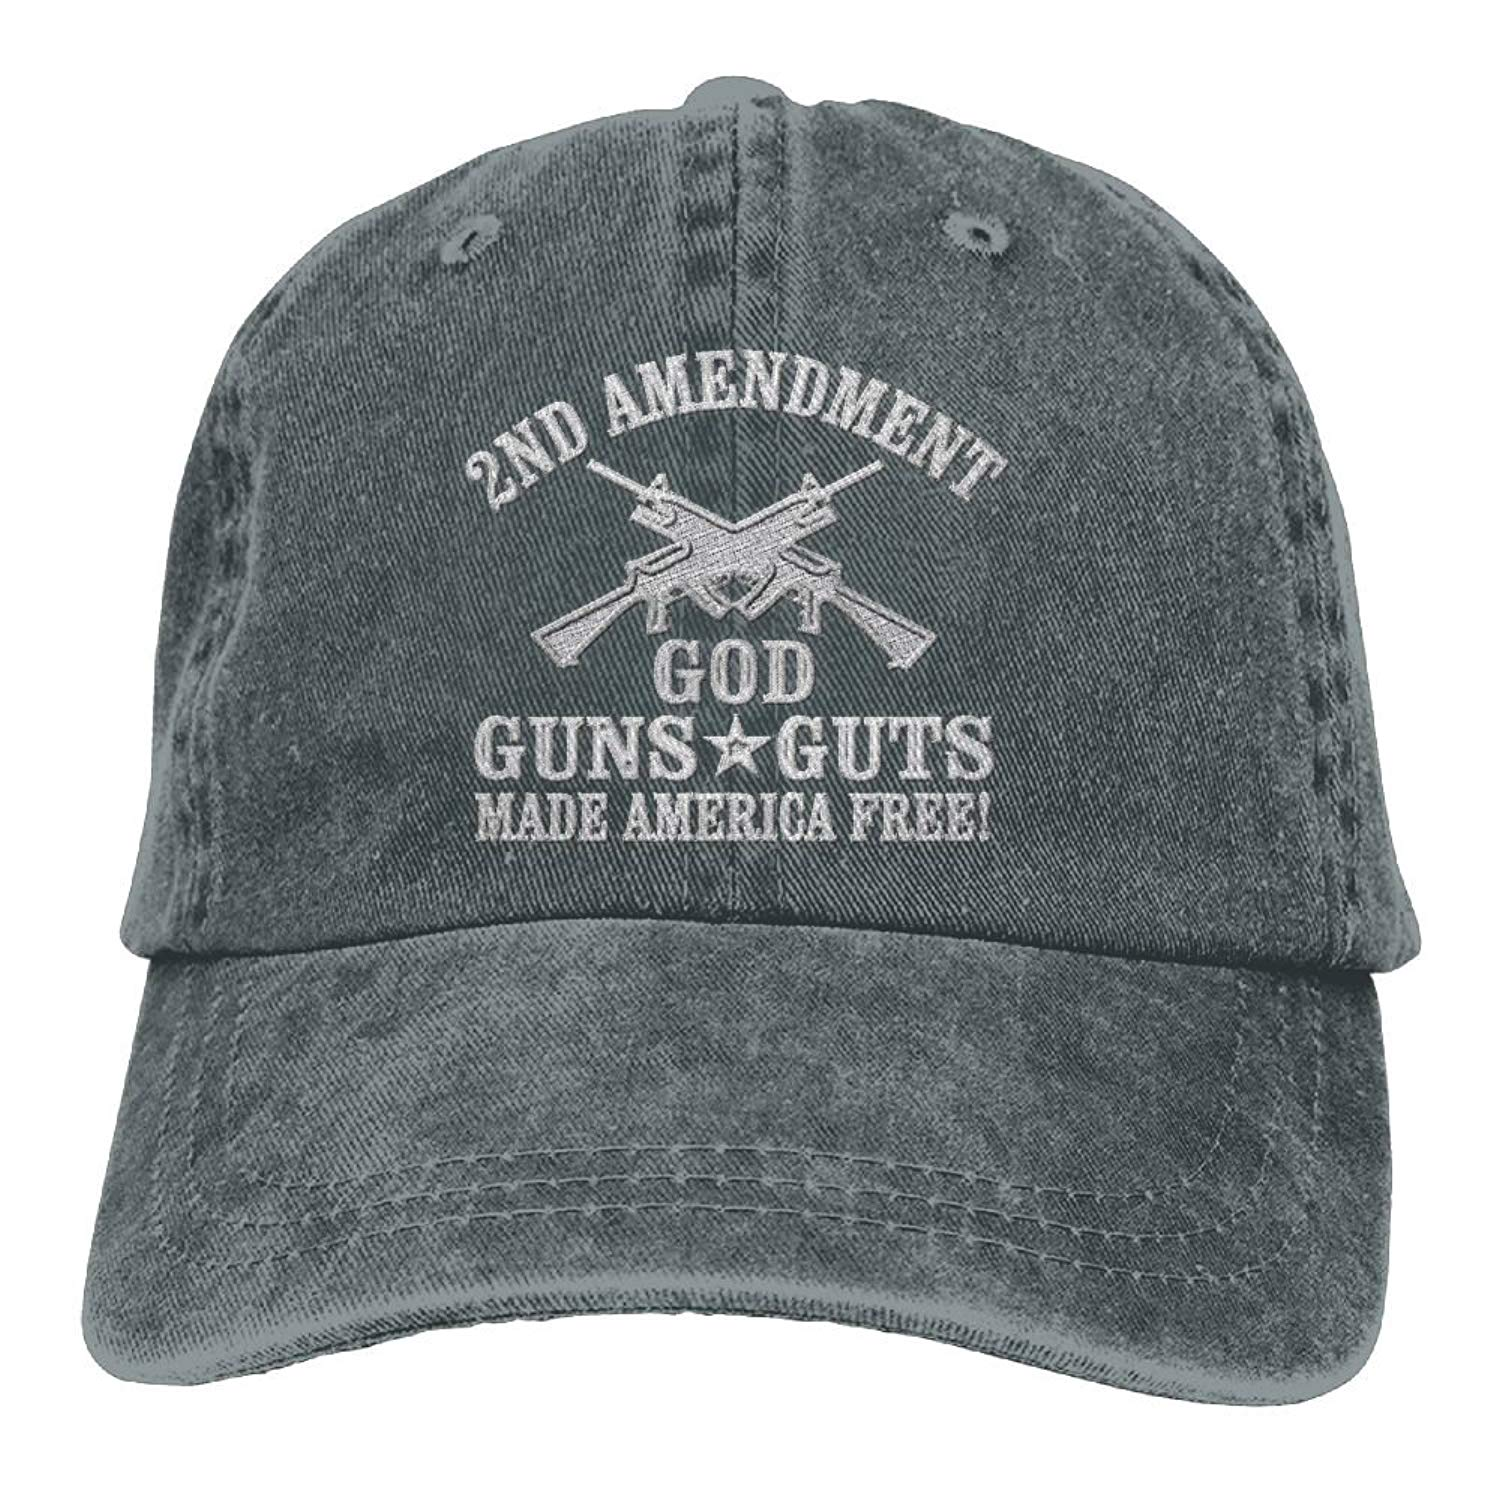 Get Quotations · Inlenged God Guns Guts Made America Free - Embroidered  Retro Denim Baseball Hat Trucker Hat Dad 2b5e10ca1a5e